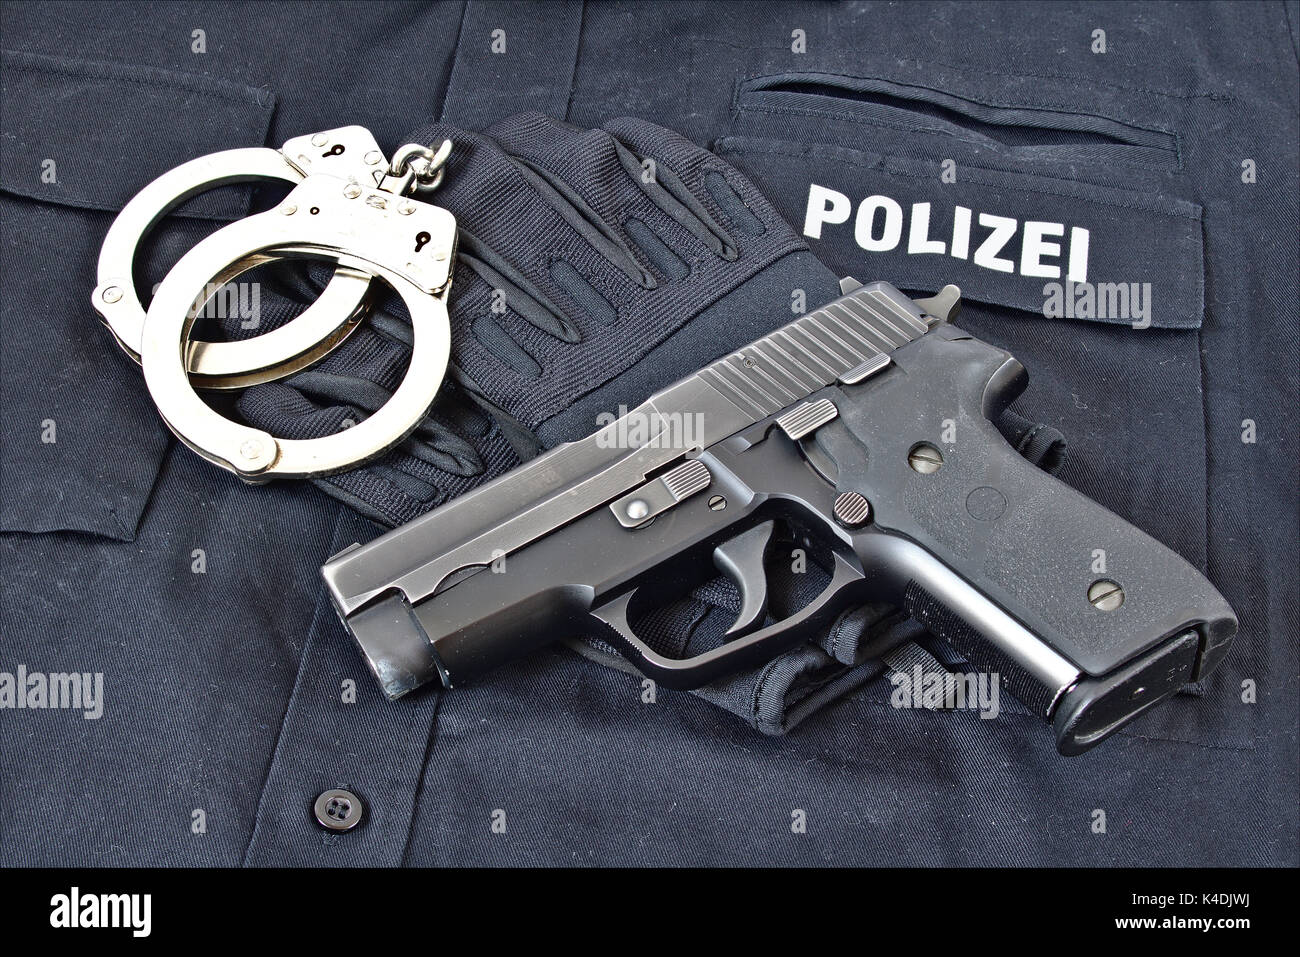 Handgun with handcuffs and gloves on blue uniform shirt with 'Police' in German on it - Stock Image